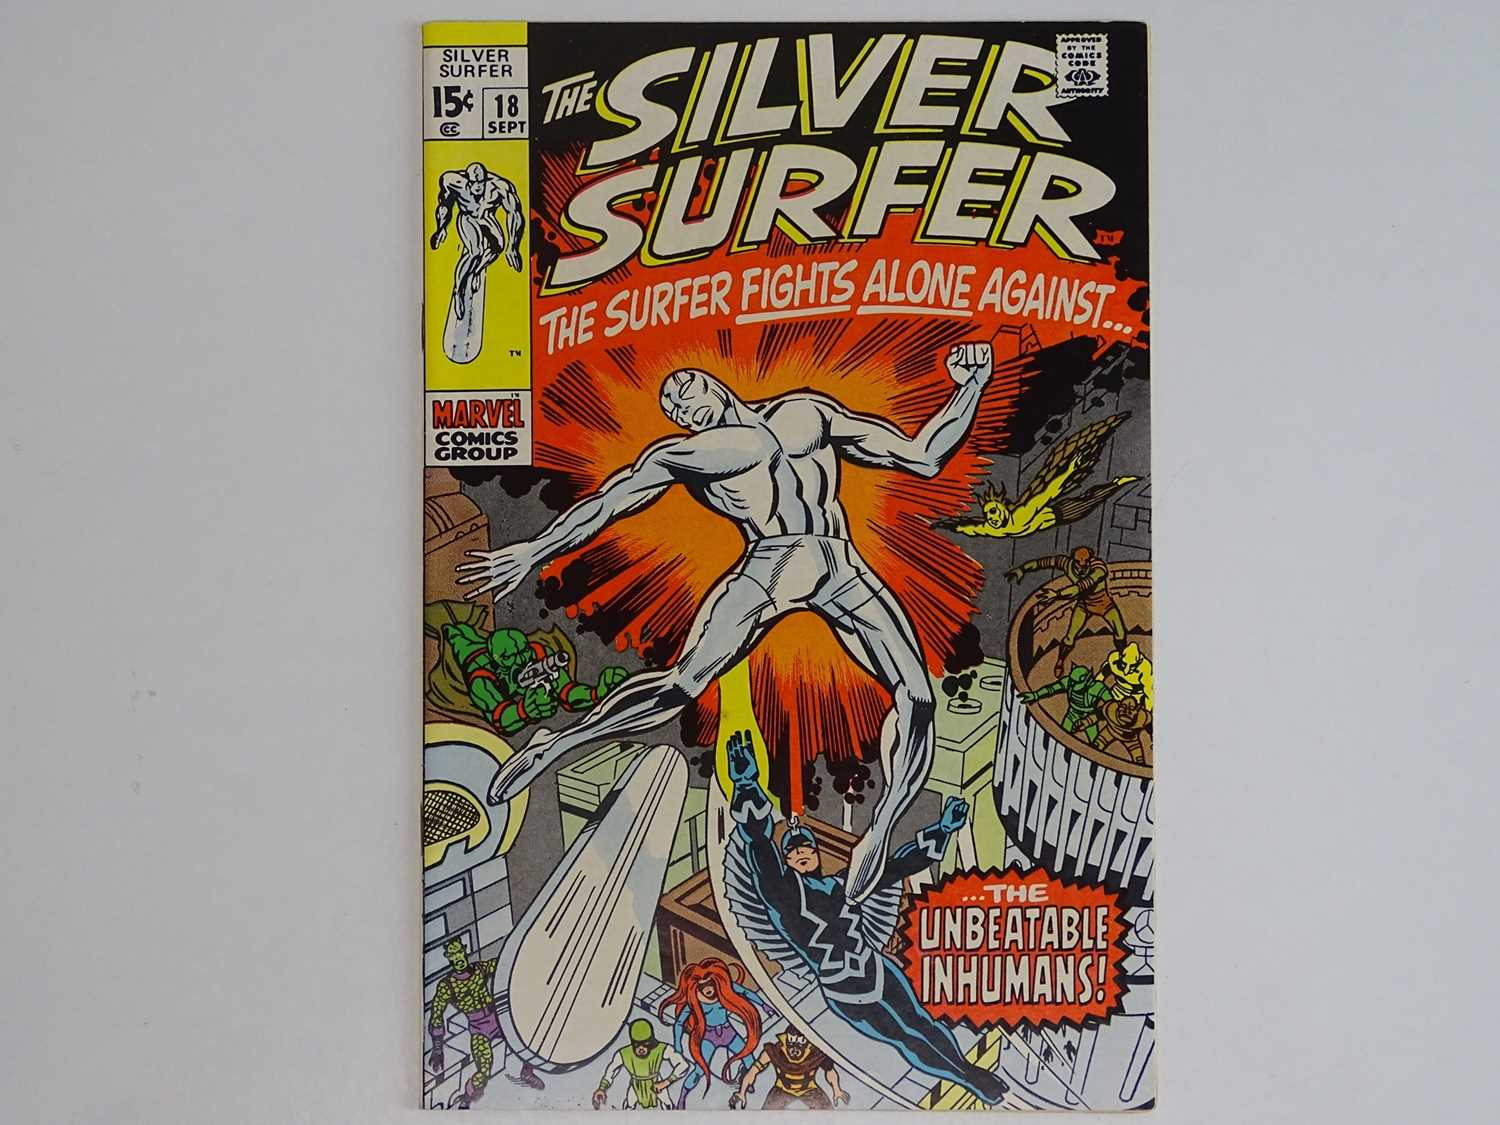 SILVER SURFER #18 - (1970 - MARVEL) - Inhumans appearance + Last issue of the title - Jack Kirby